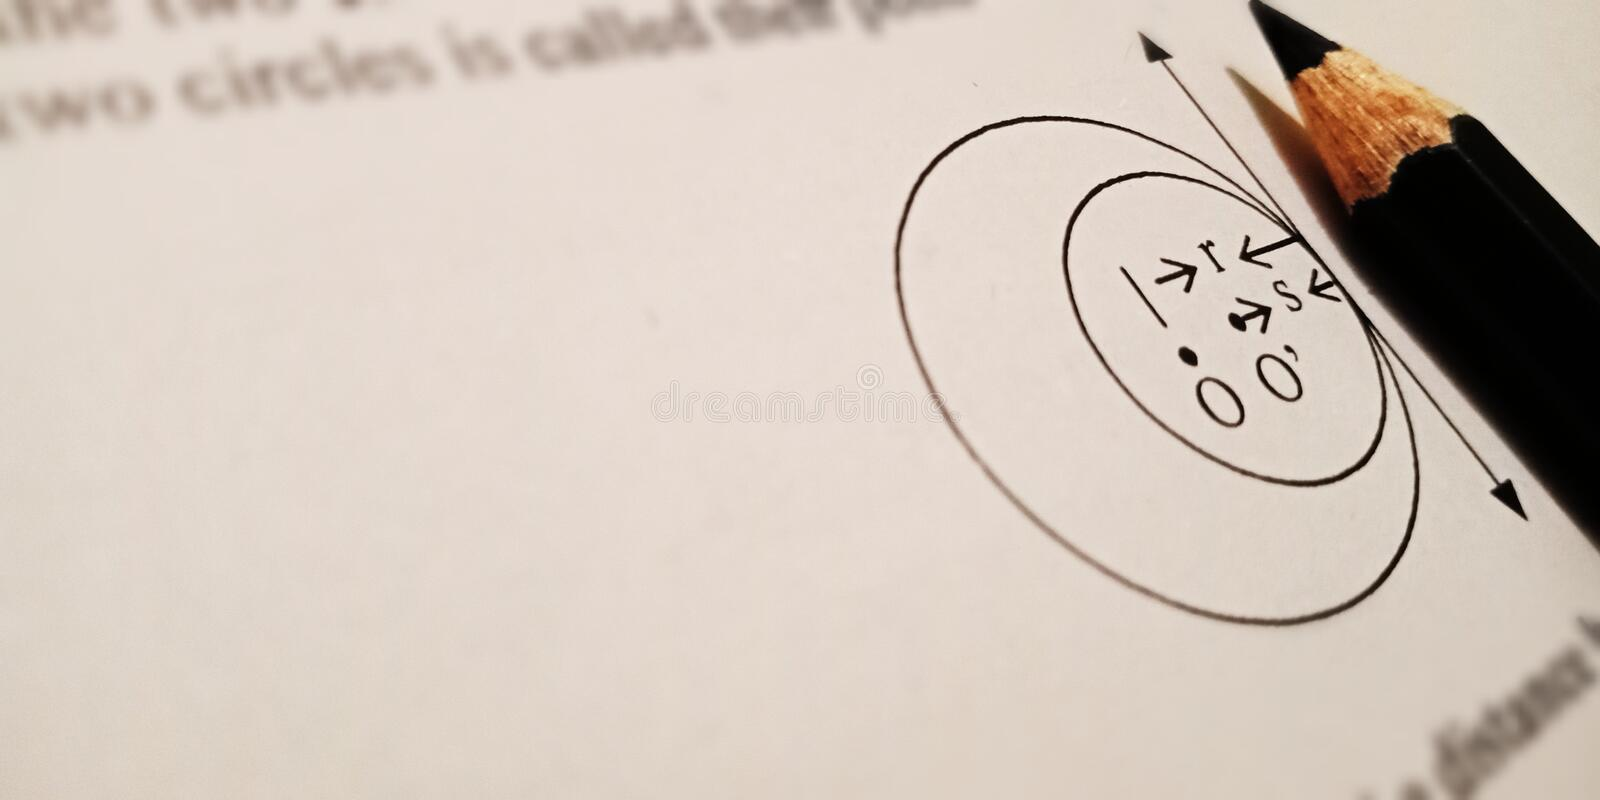 circle diagram mathematical solution on white paper sheet with black pencil royalty free stock photography